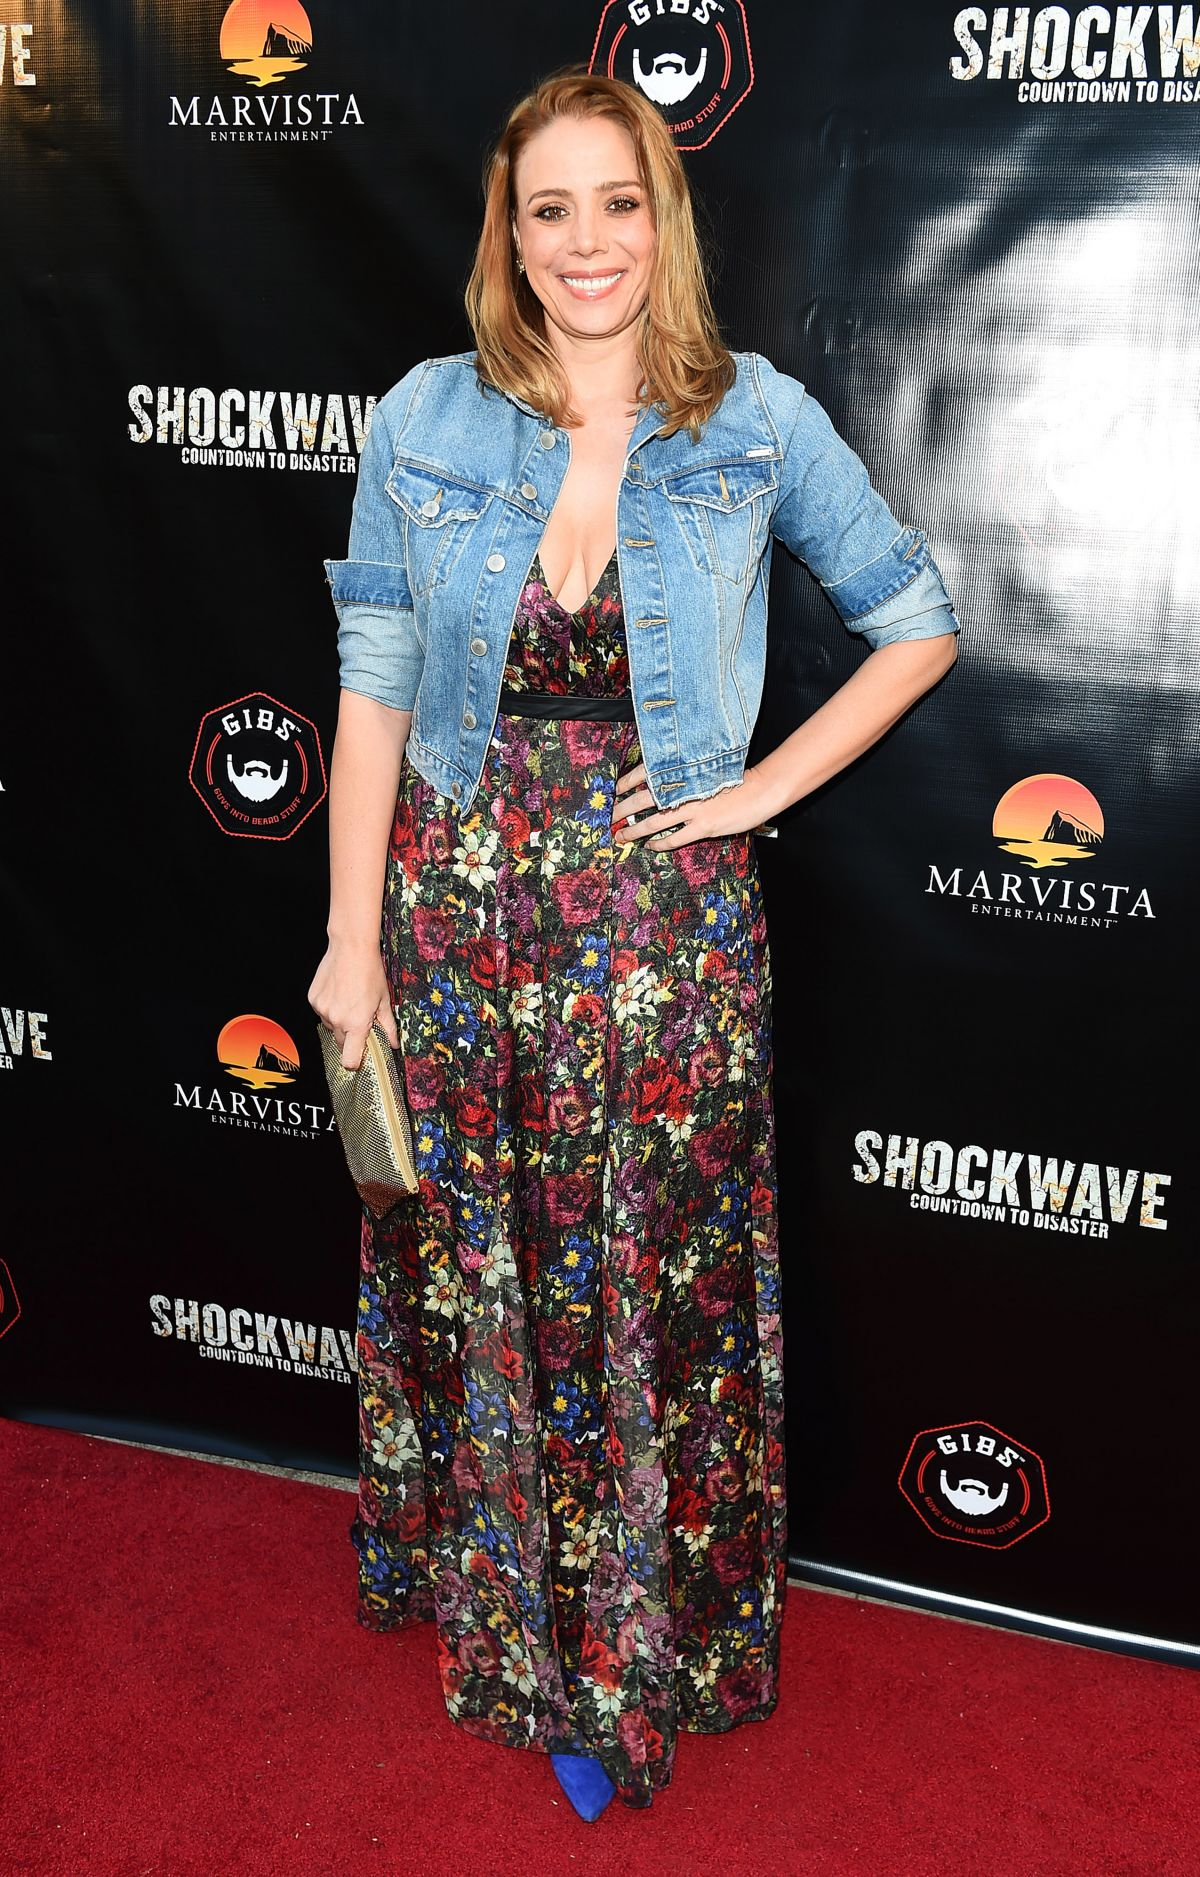 STACEY ORISTANO at Shockwave Premiere in Los Angeles 05/11/2017